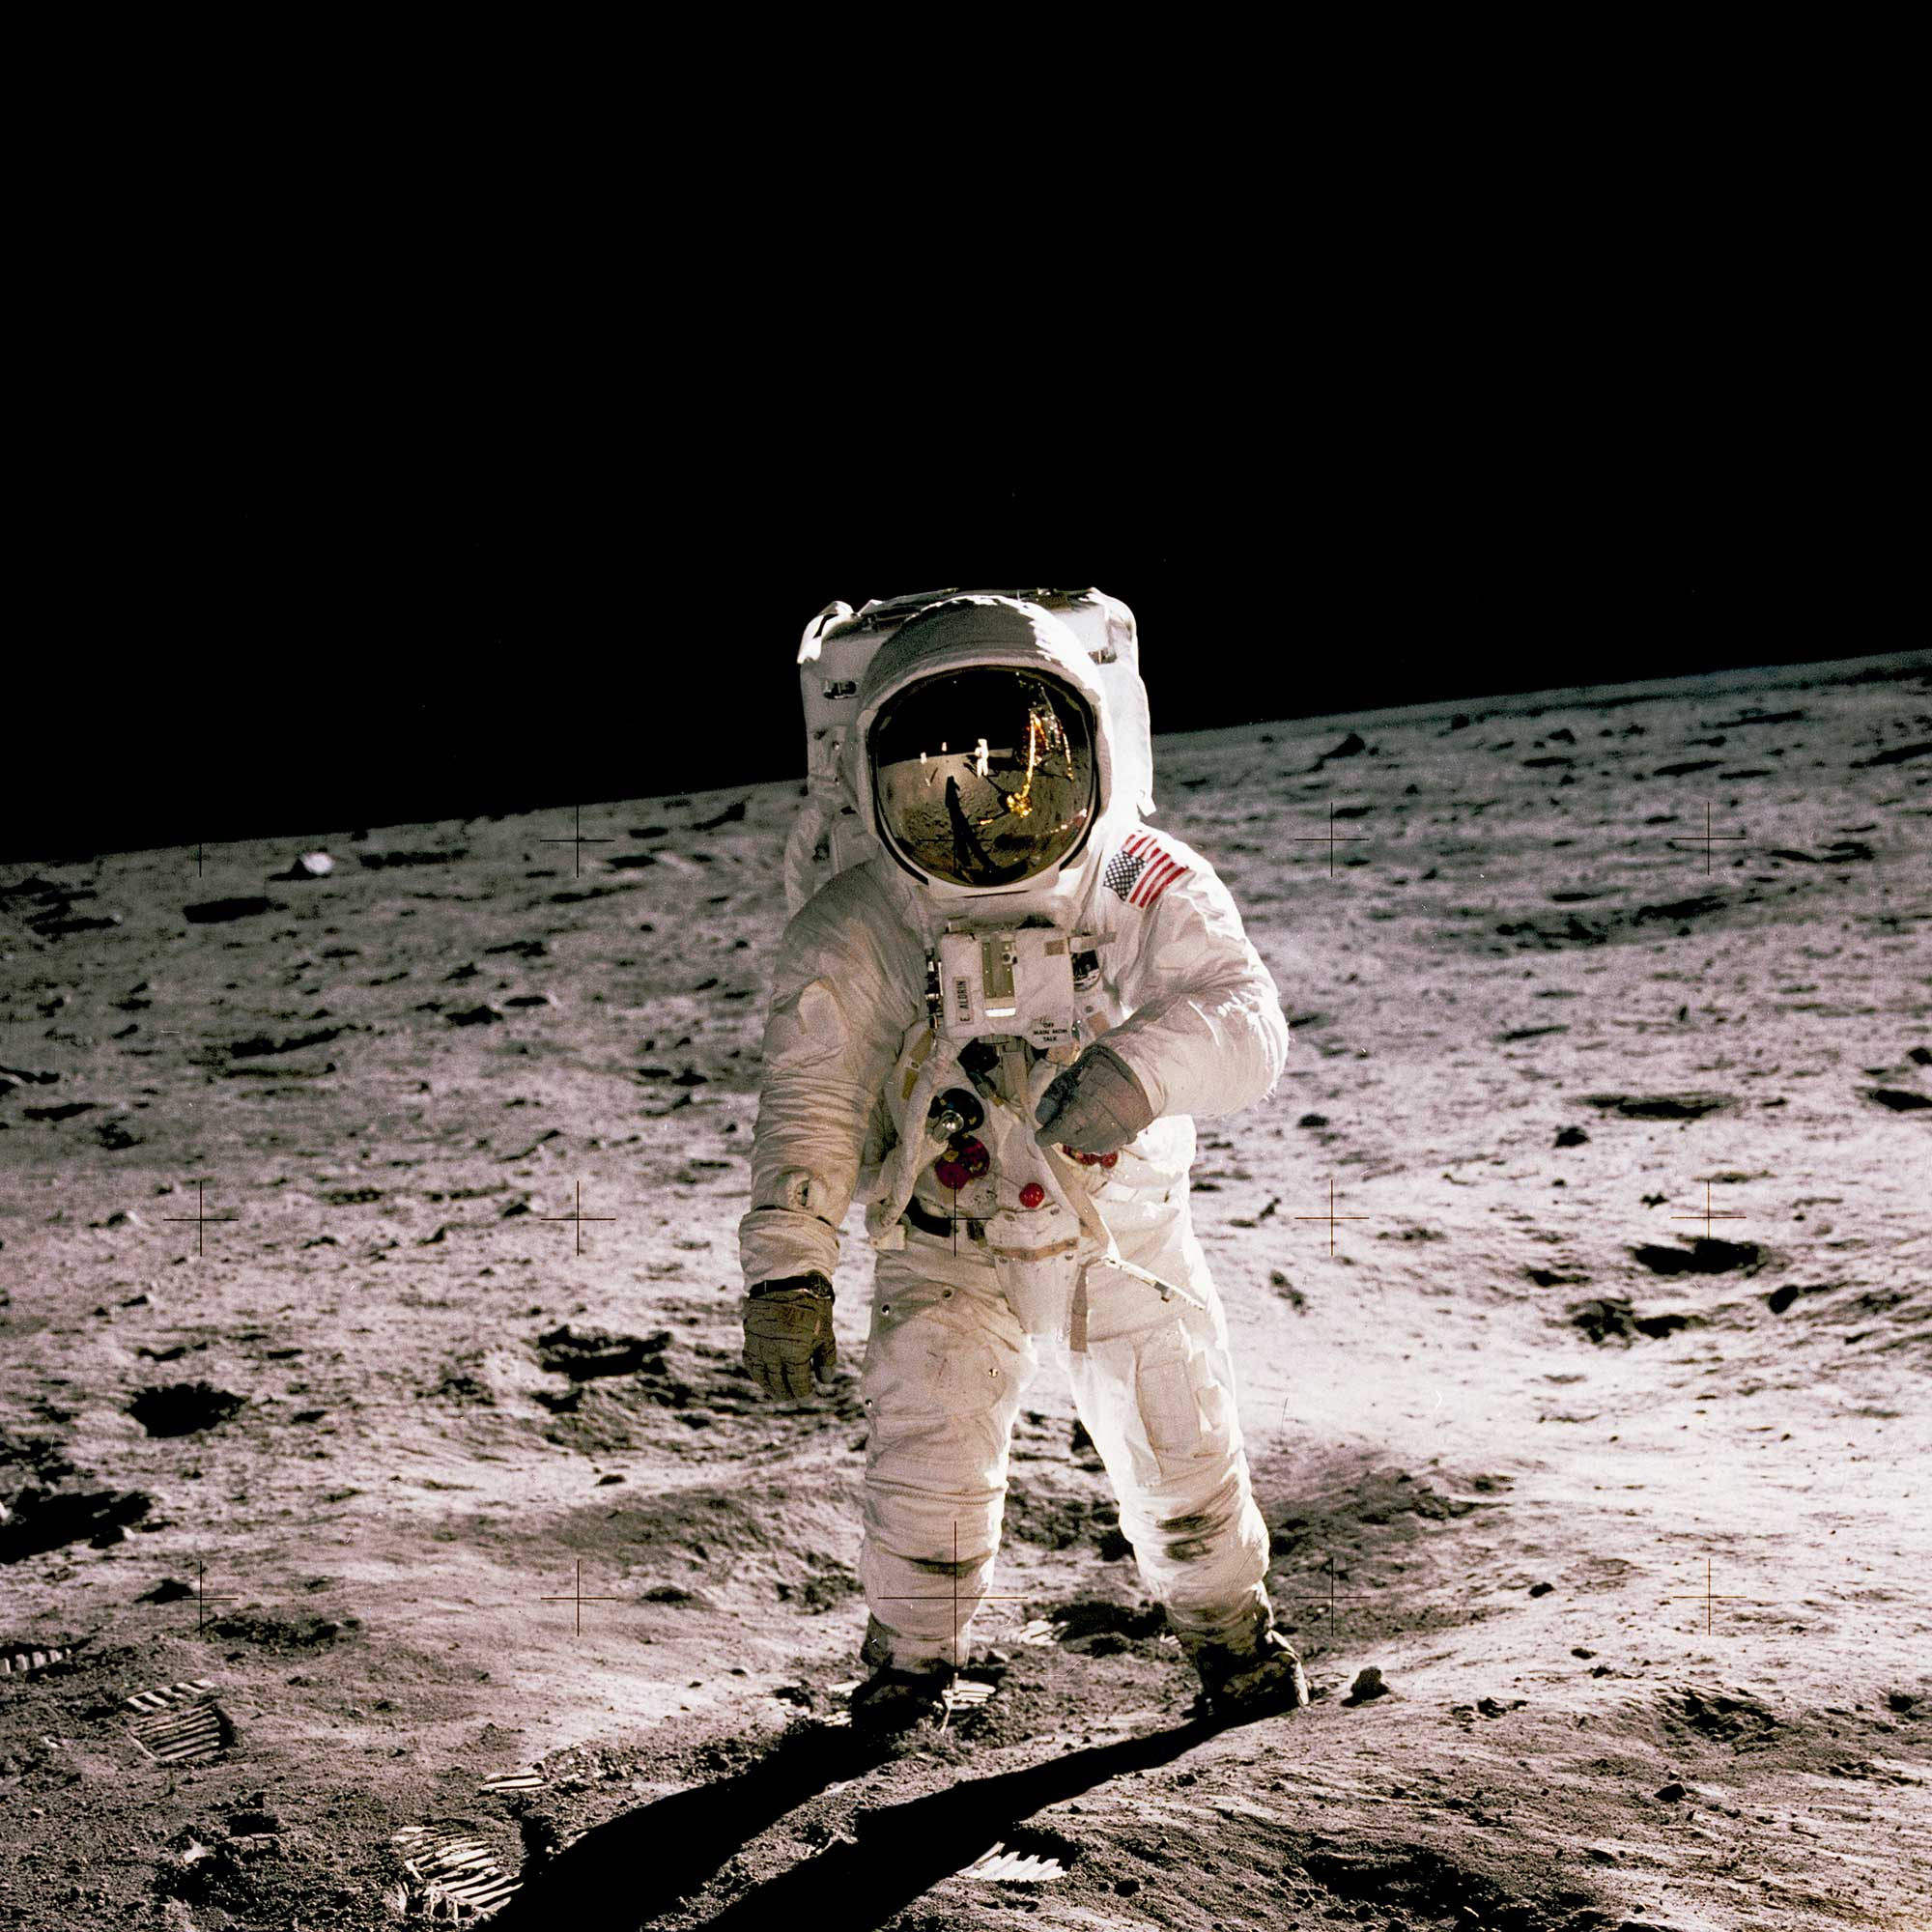 Buzz Aldrin walking on the lunar surface with Neil Armstrong reflected in Aldrin's visor